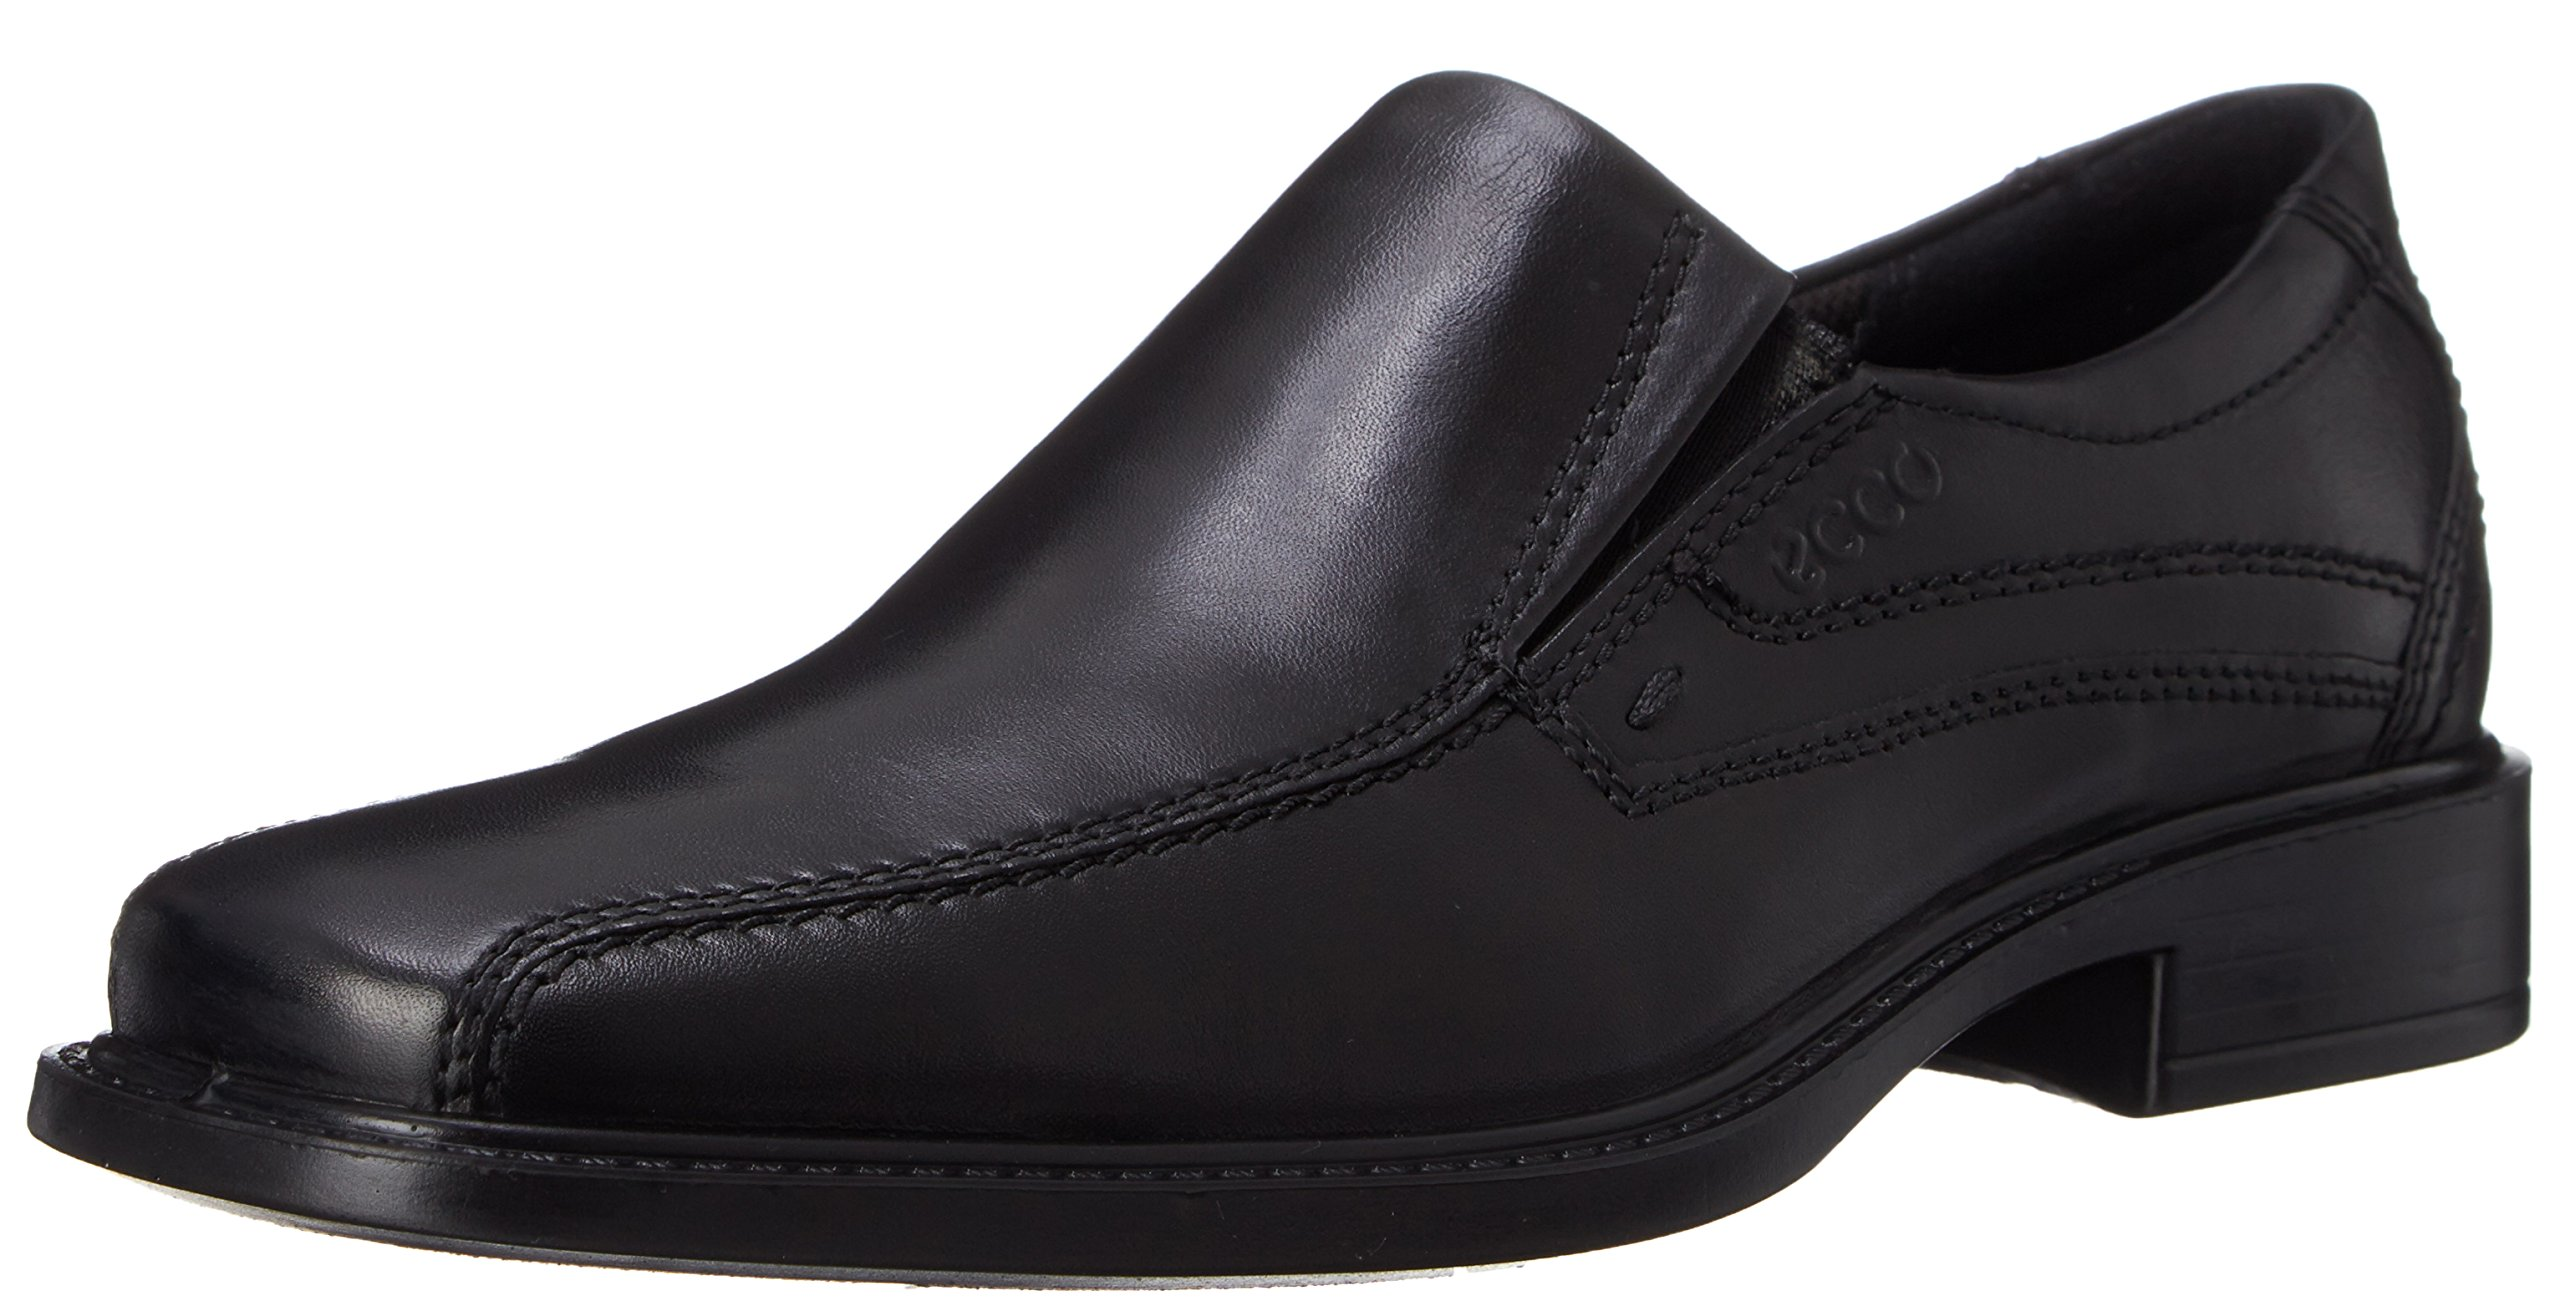 ECCO Men's New Jersey Slip On,Black,39 EU (US Men's 5-5.5 M) by ECCO (Image #1)